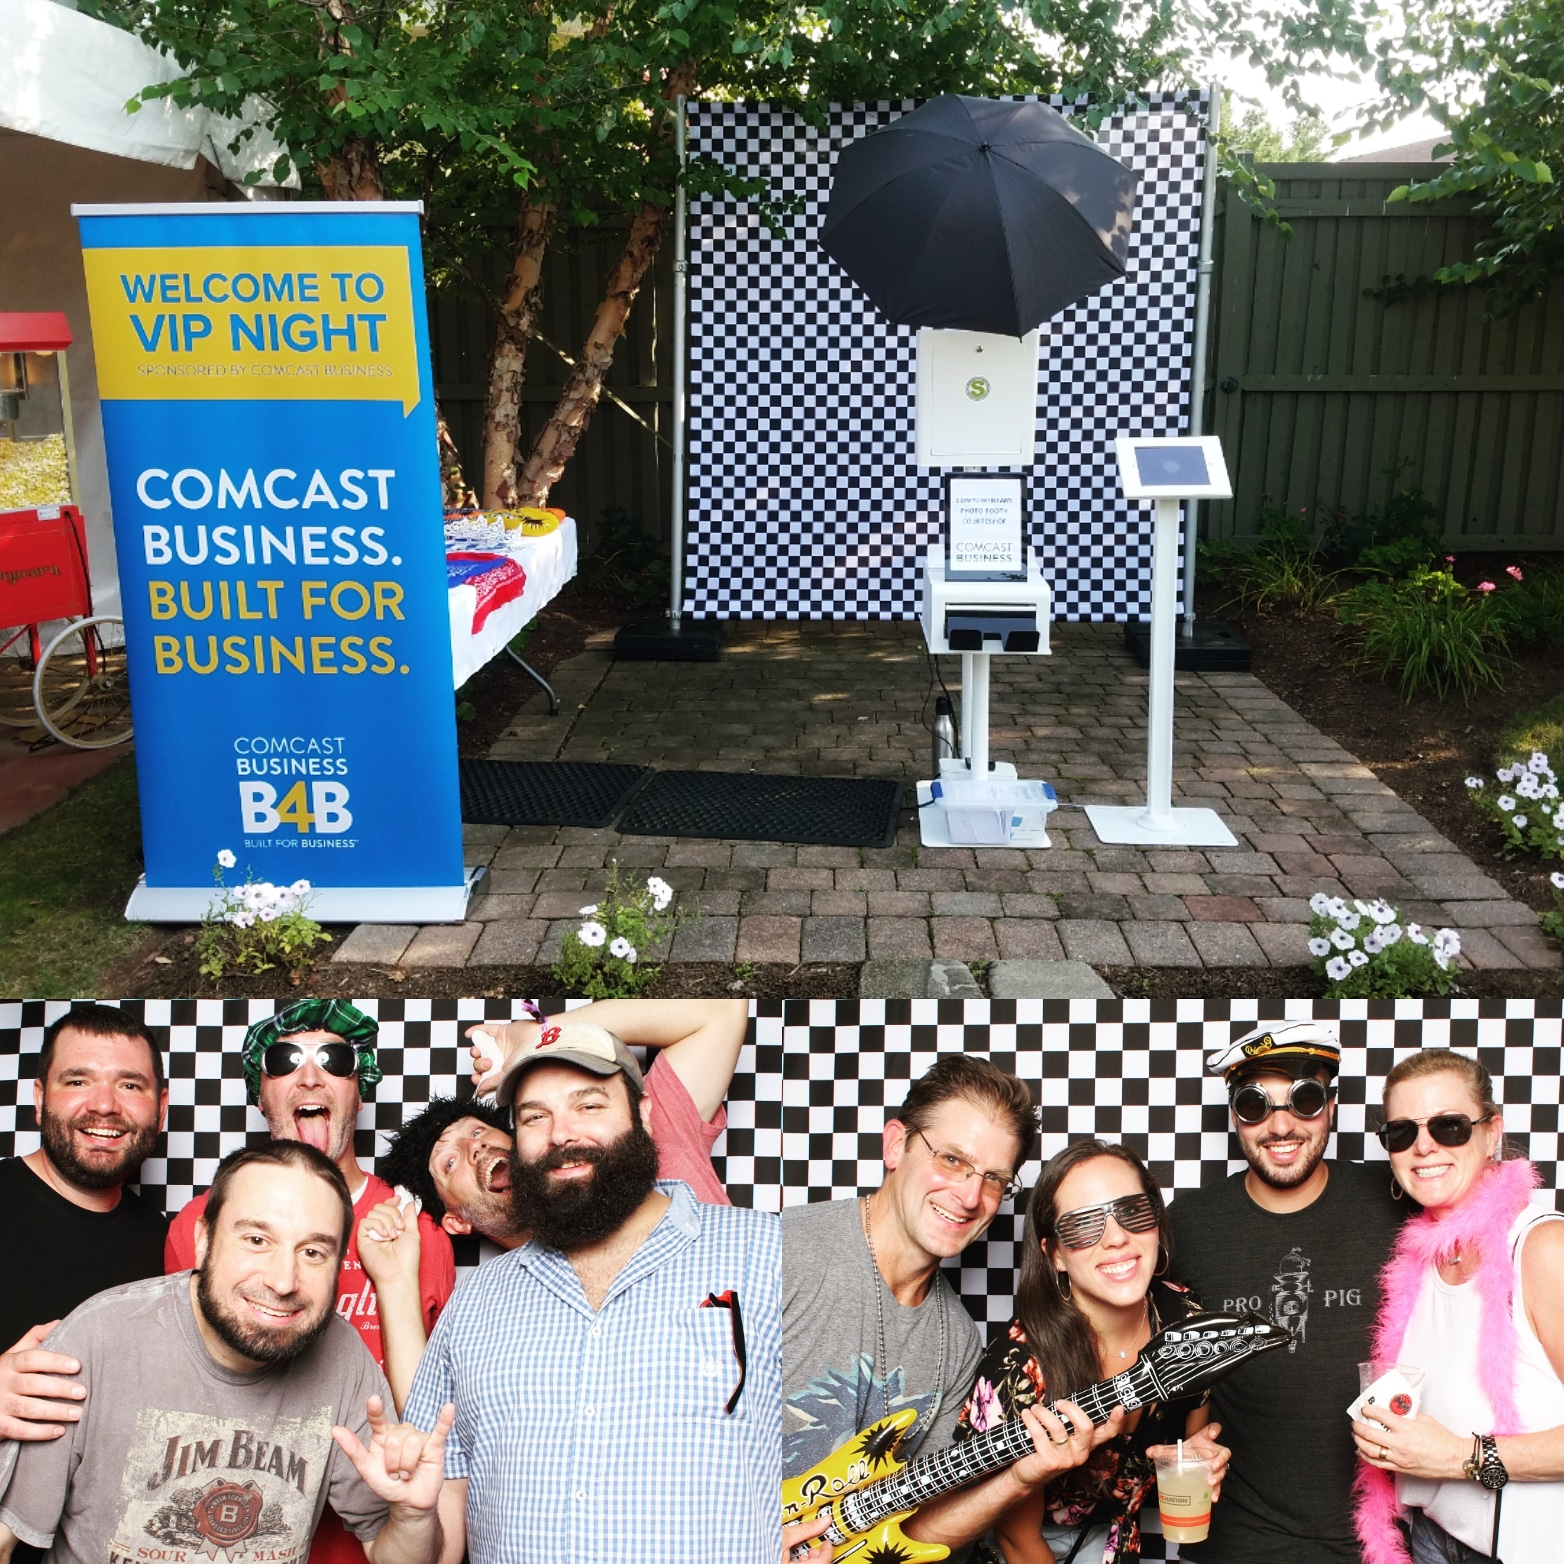 SnapSeat Photo Booth - Comcast - Xfinity Theater VIP Hartford, CT